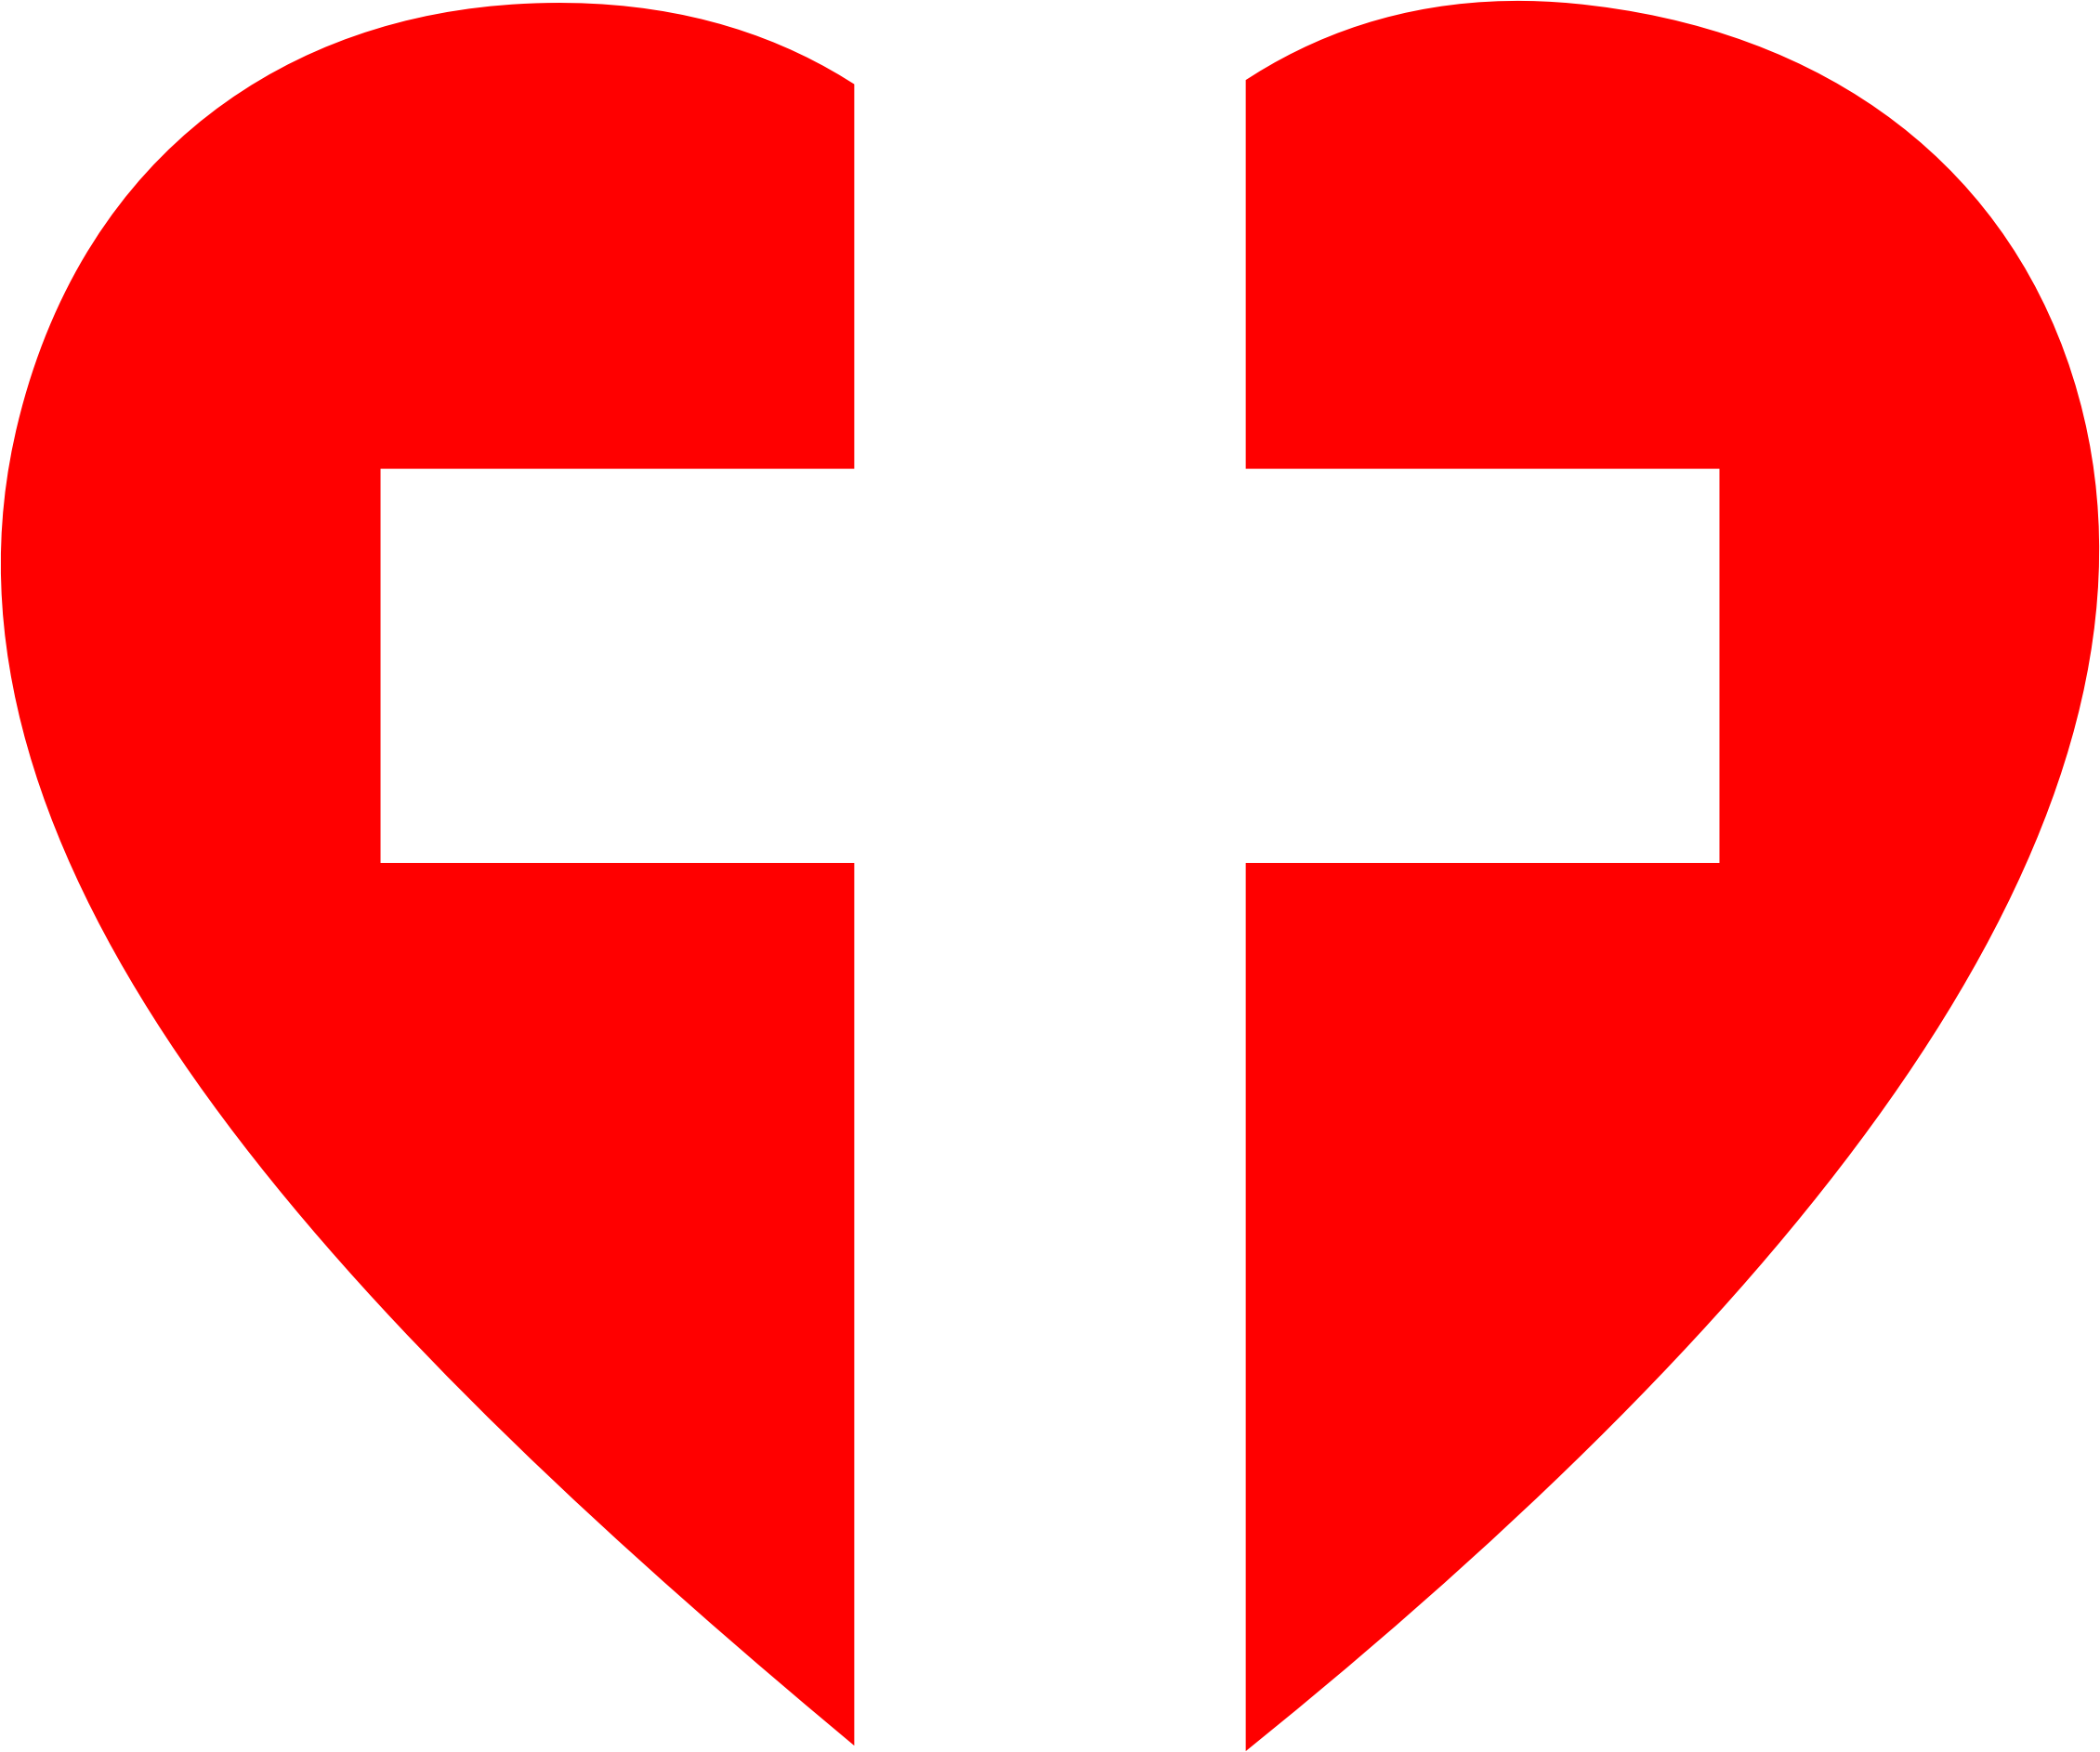 Cross clipart with heart picture transparent Cross And Heart Clipart at GetDrawings.com | Free for personal use ... picture transparent